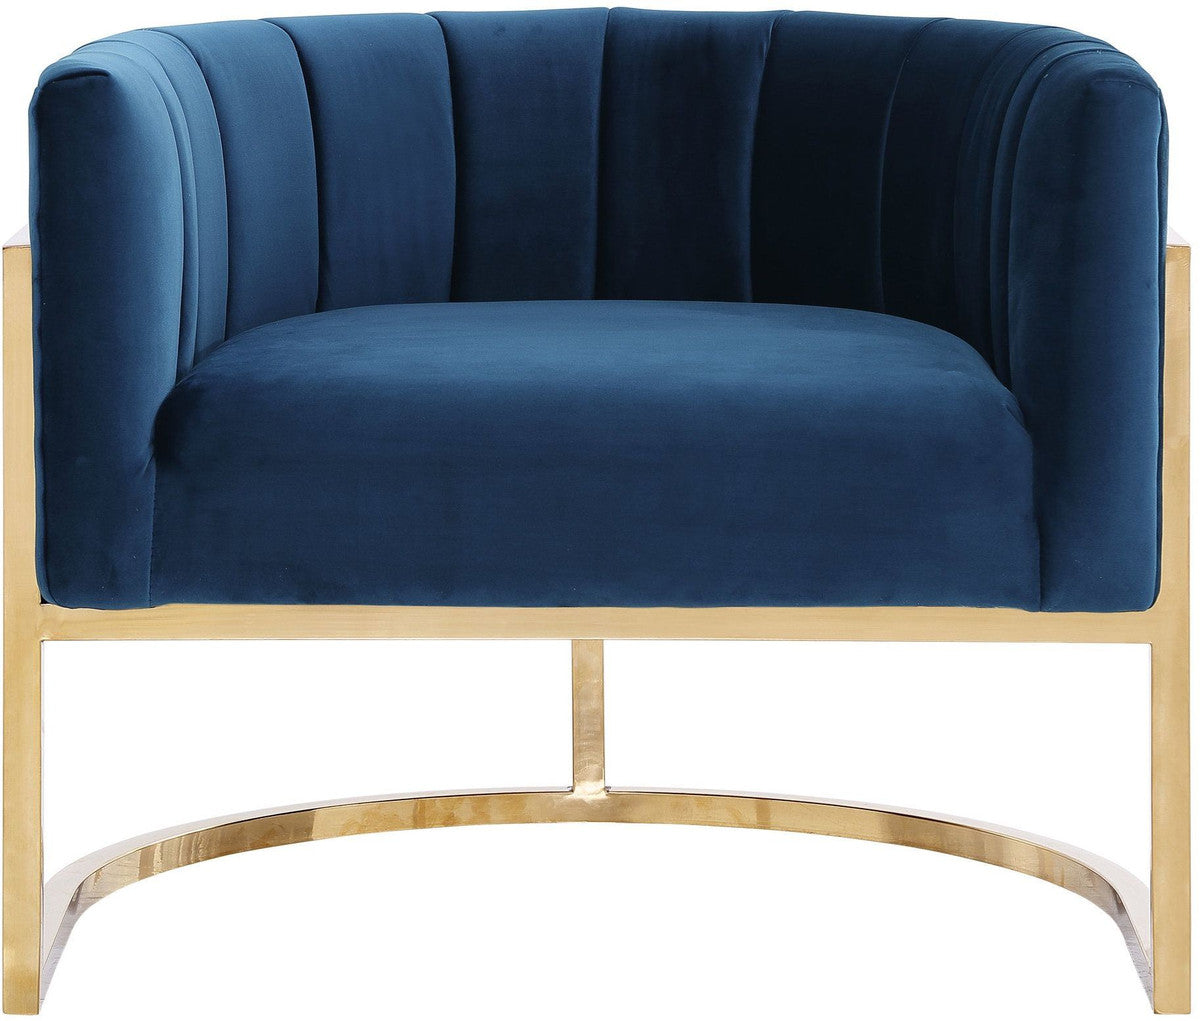 MAGNOLIA NAVY GOLD CHAIR